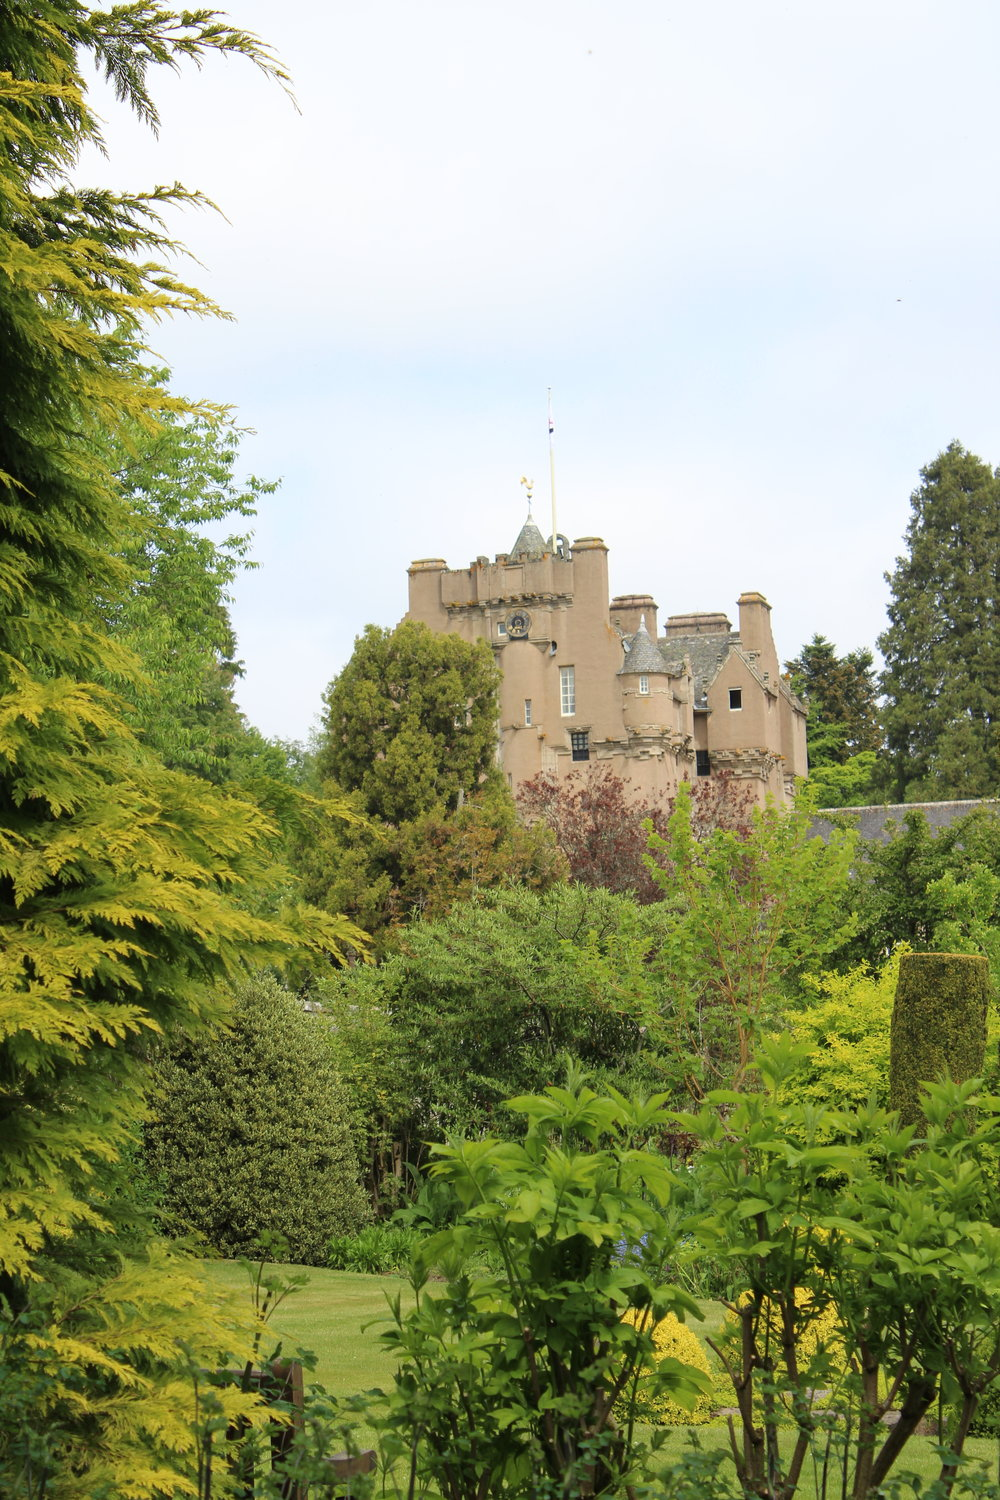 A view of the Castle from the gardens